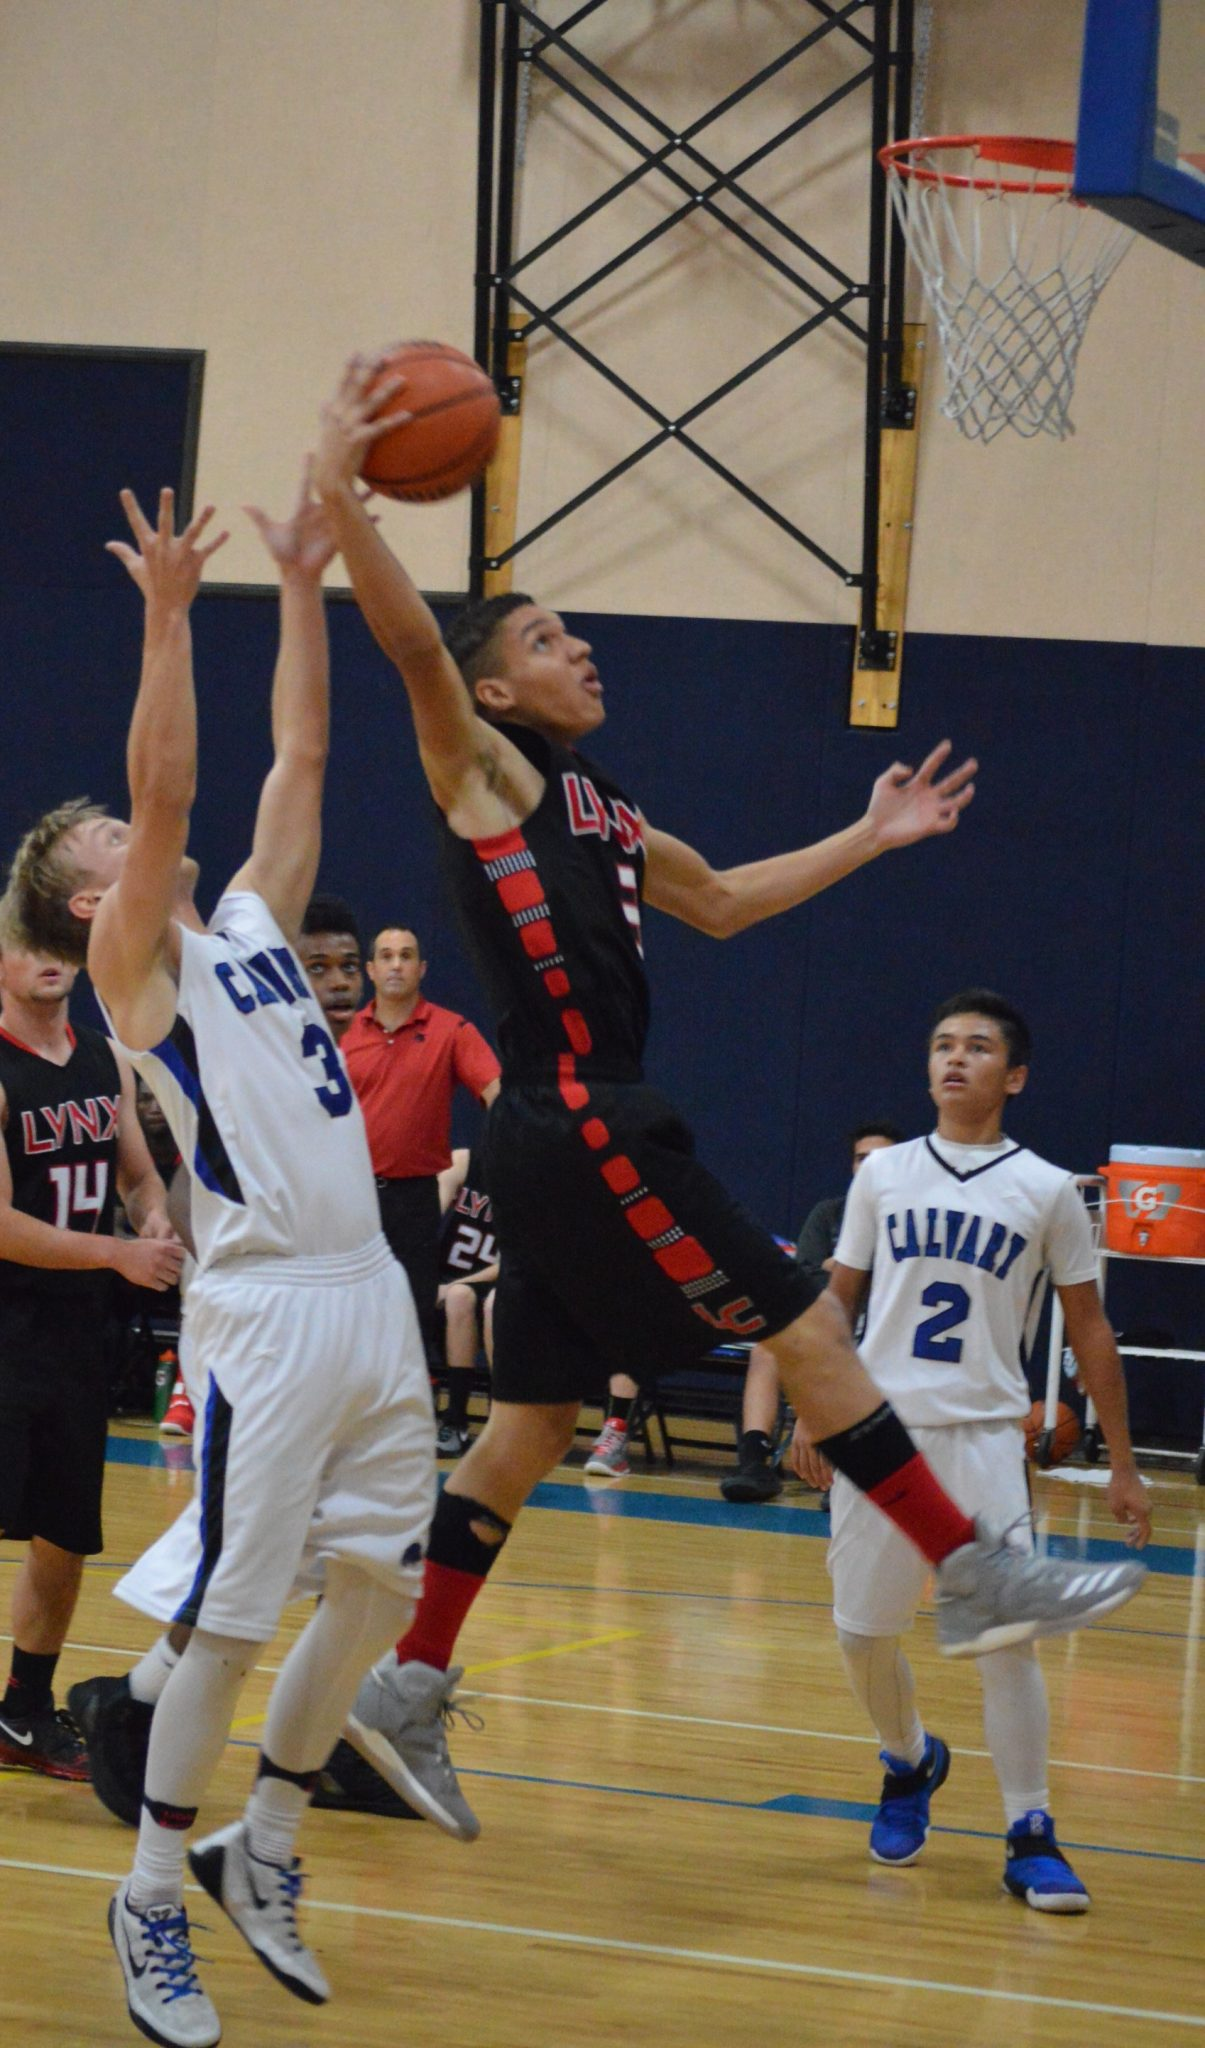 Lincoln Boys Fall to Calvary and Meadows